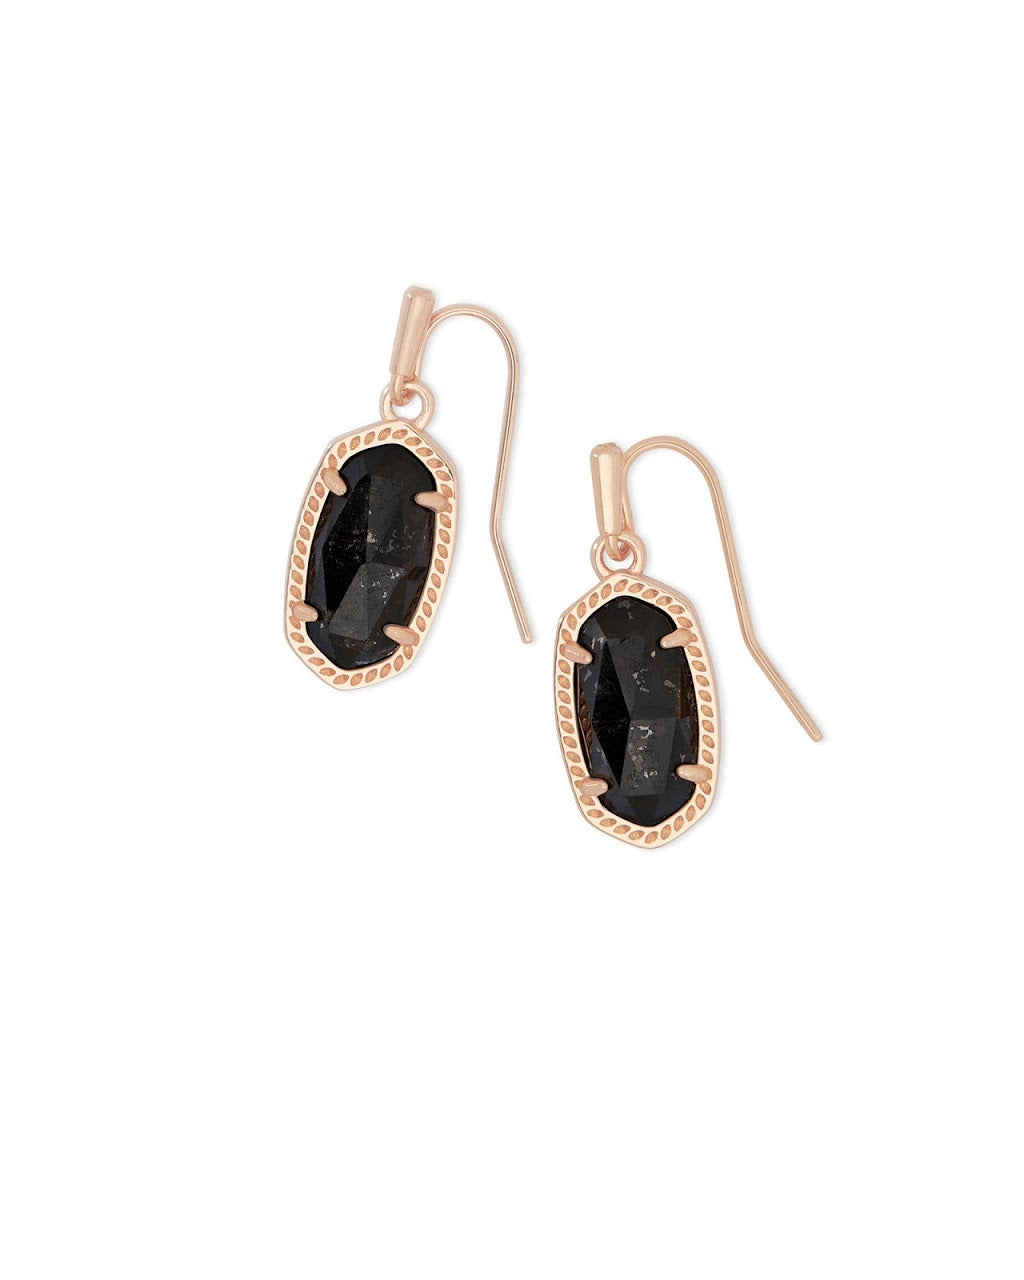 Lee Rose Gold Earrings-Black Granite